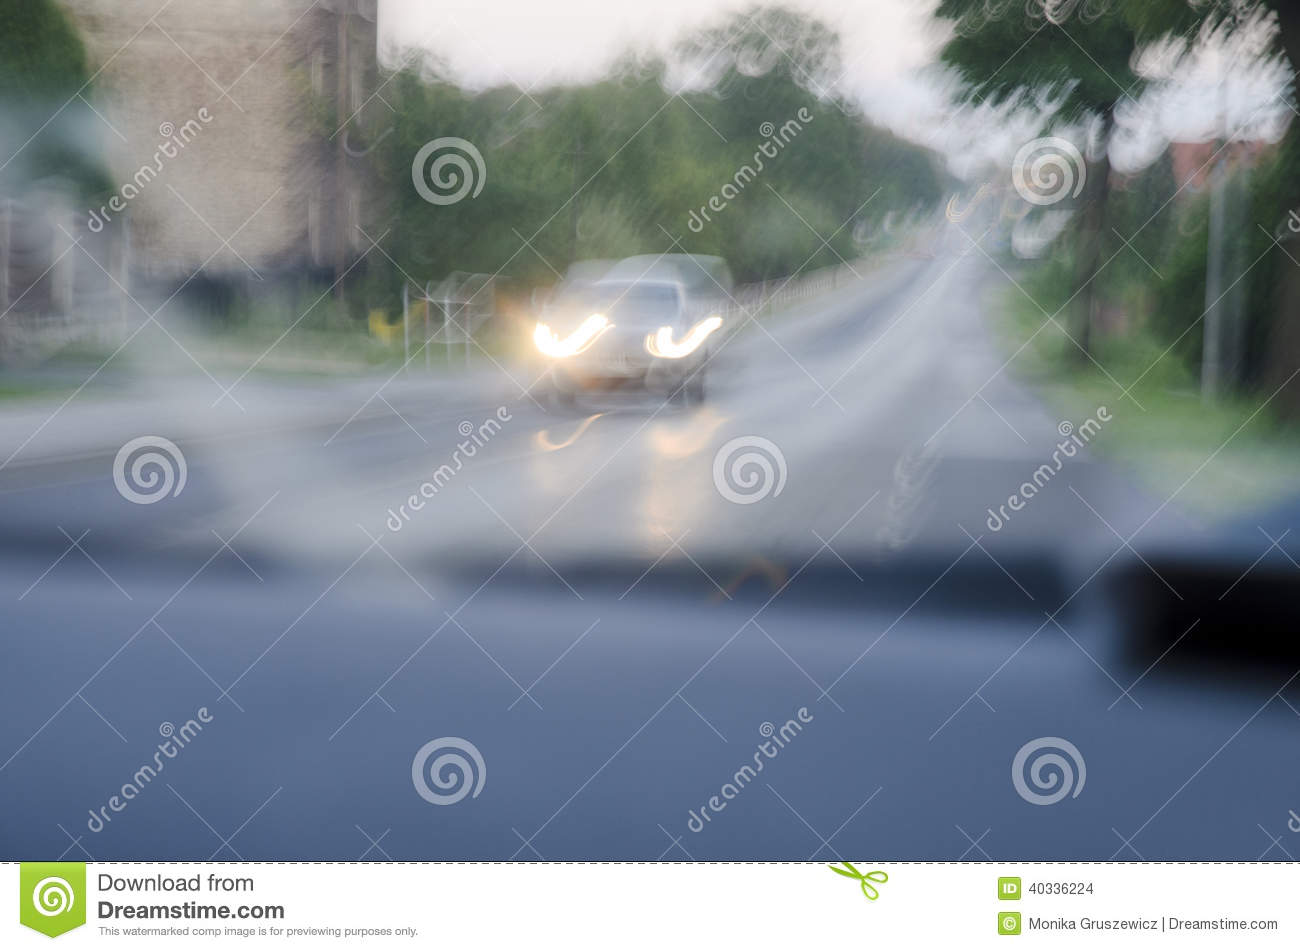 Impaired Vision After Alcohol. Stock Photo - Image: 40336224